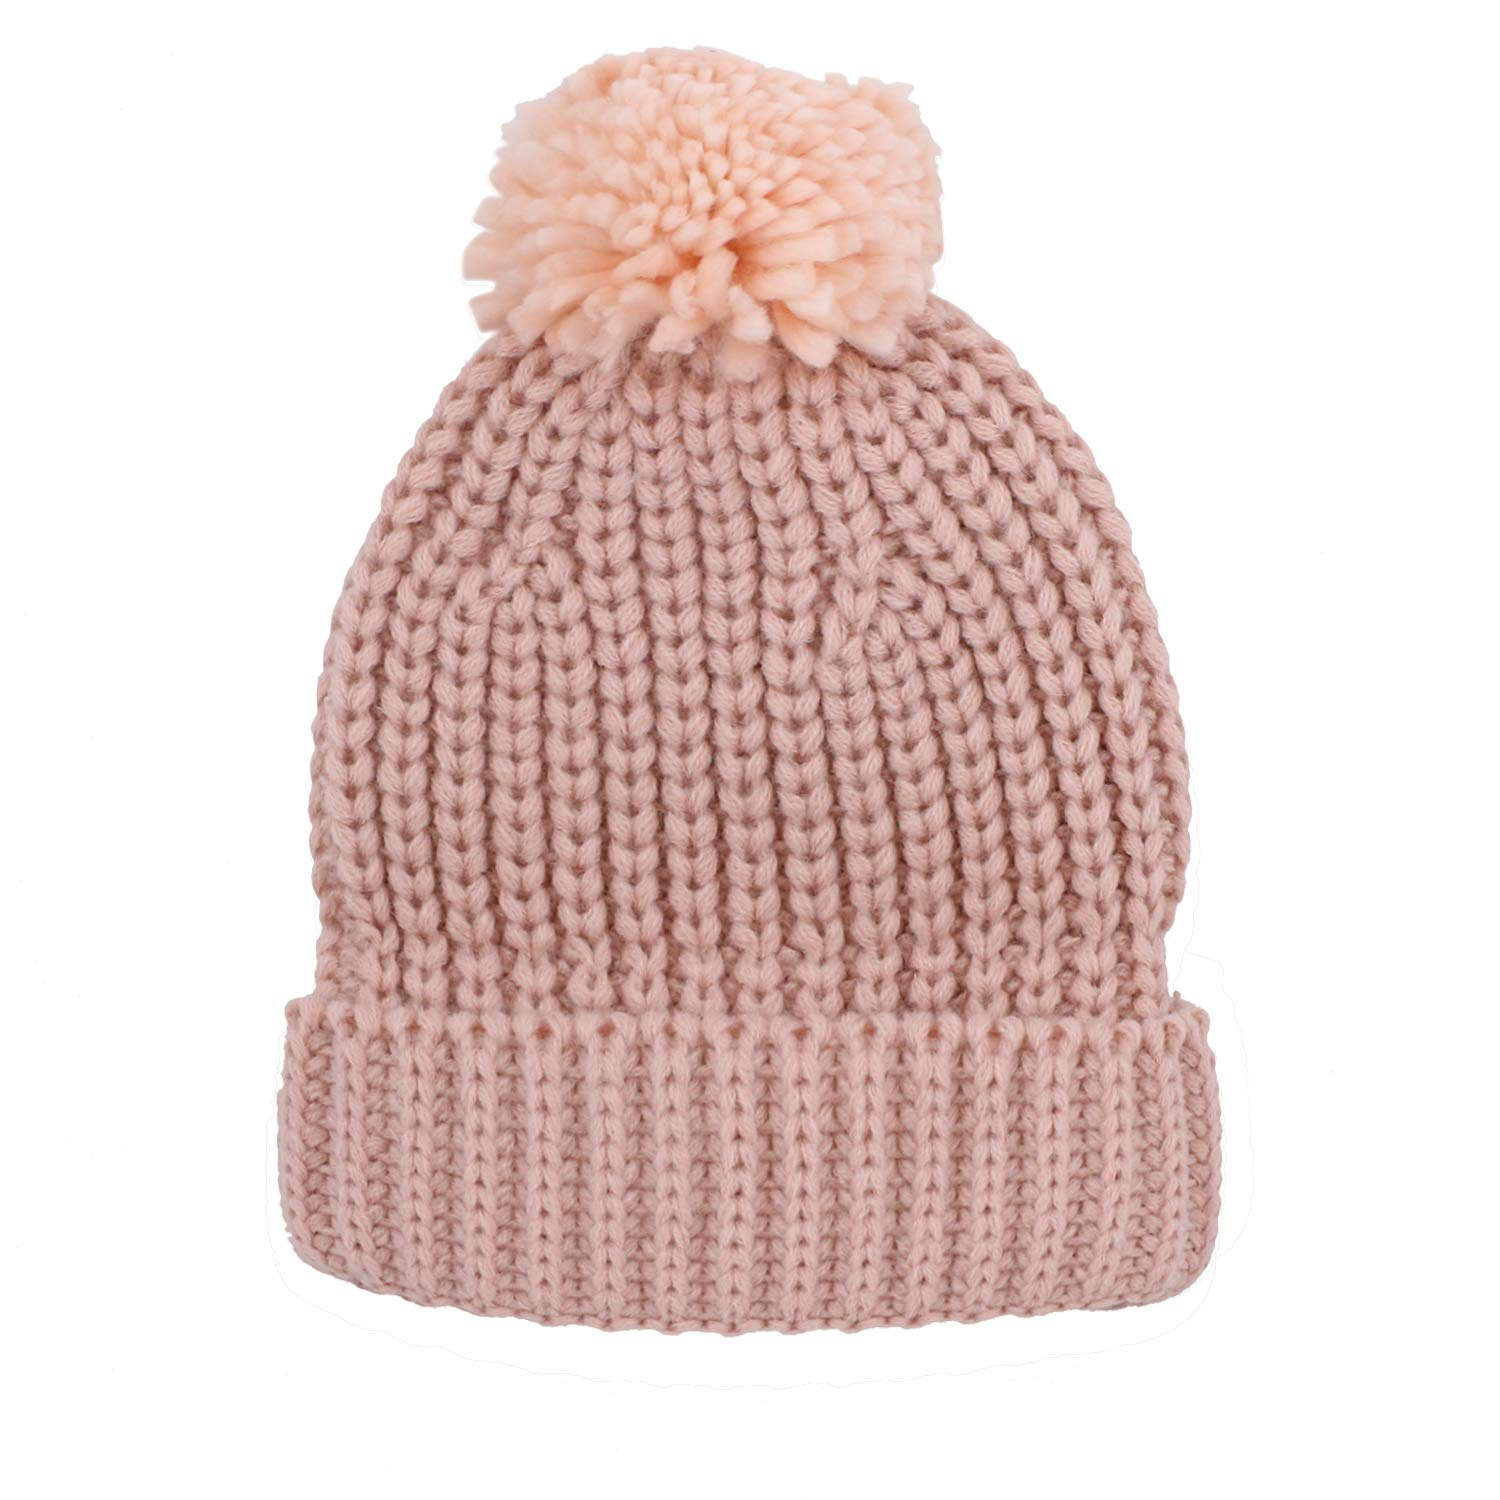 Amazon.com  Jiuhong Kids Toddler Pompom Beanie Hat Baby Cable Knit Winter  Hats Candy-Colored Caps for Girls and Boys (Beige)  Clothing 6cfa7f921a1